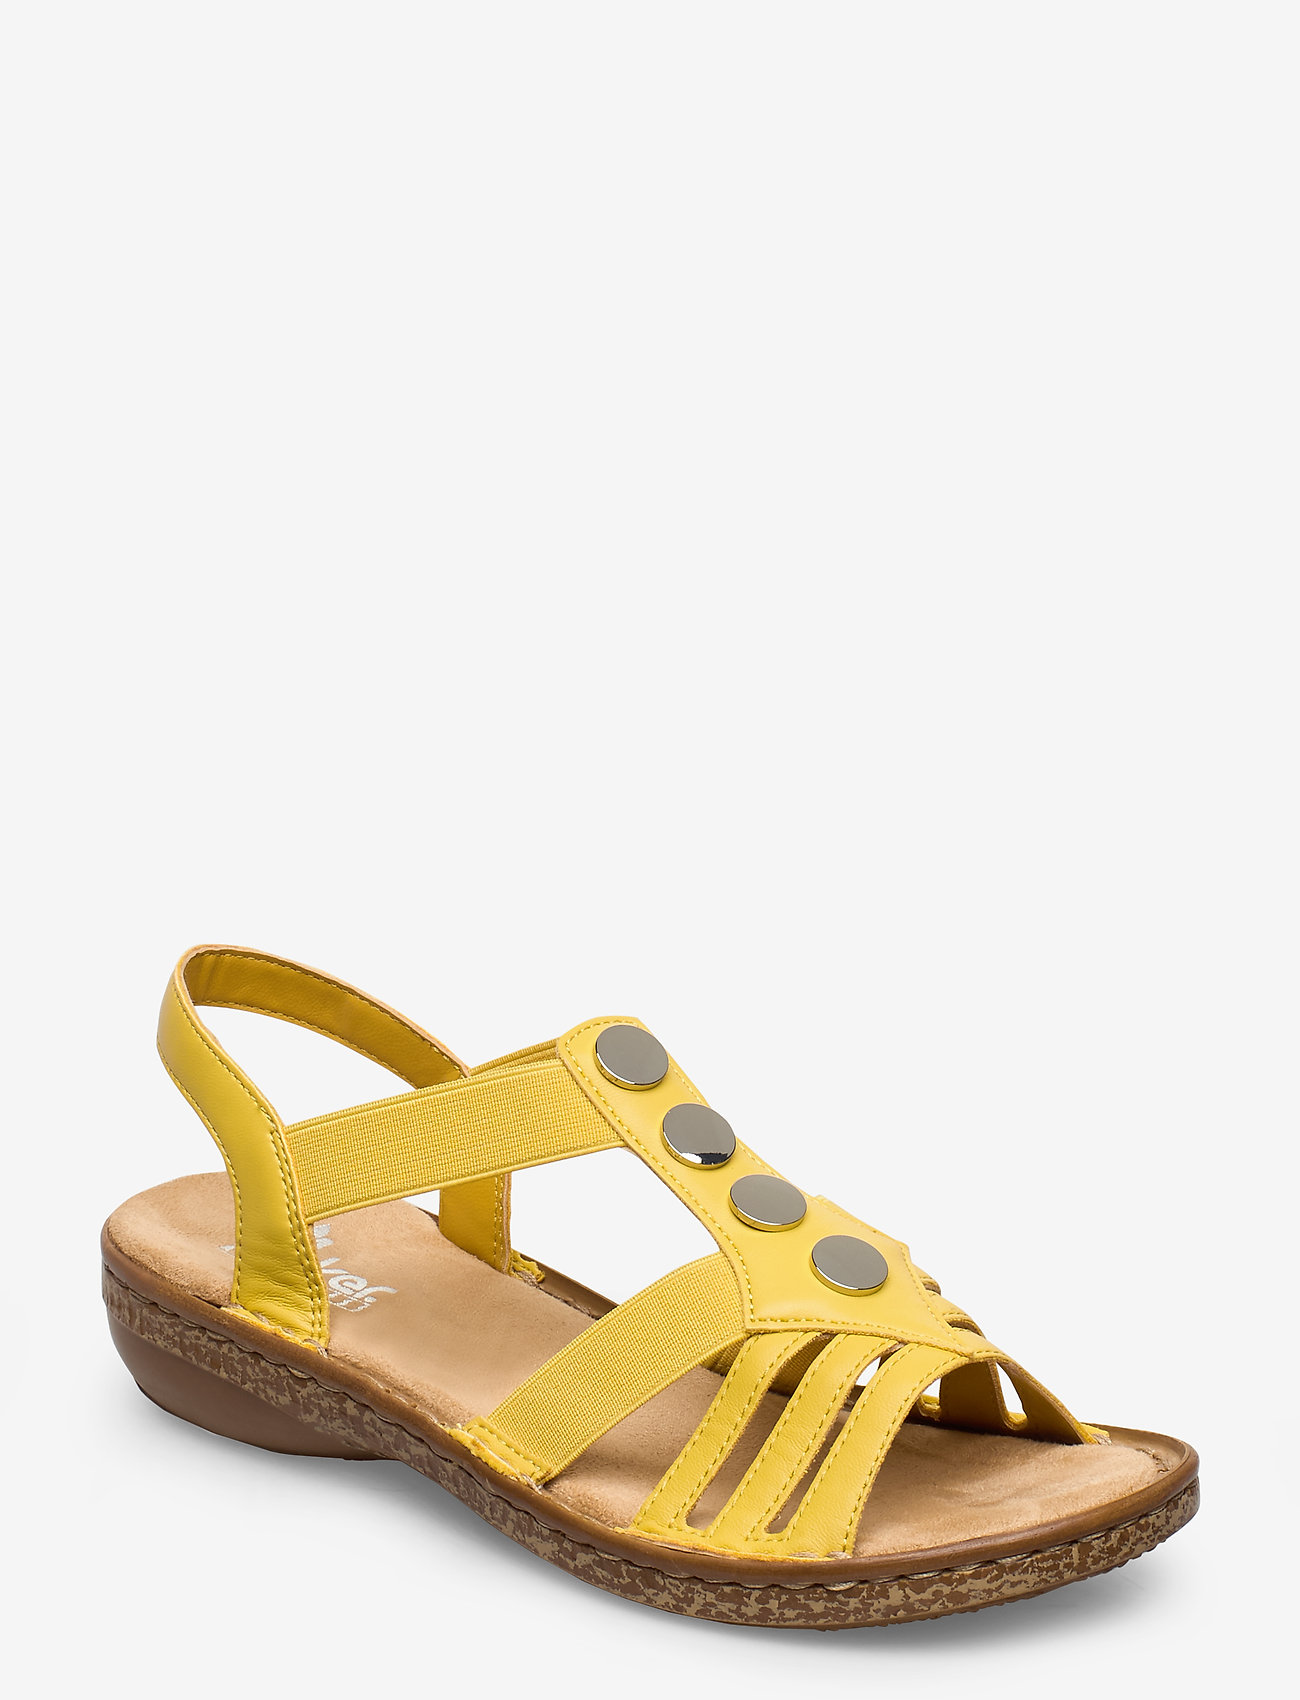 Rieker - 62831-00 - flat sandals - yellow